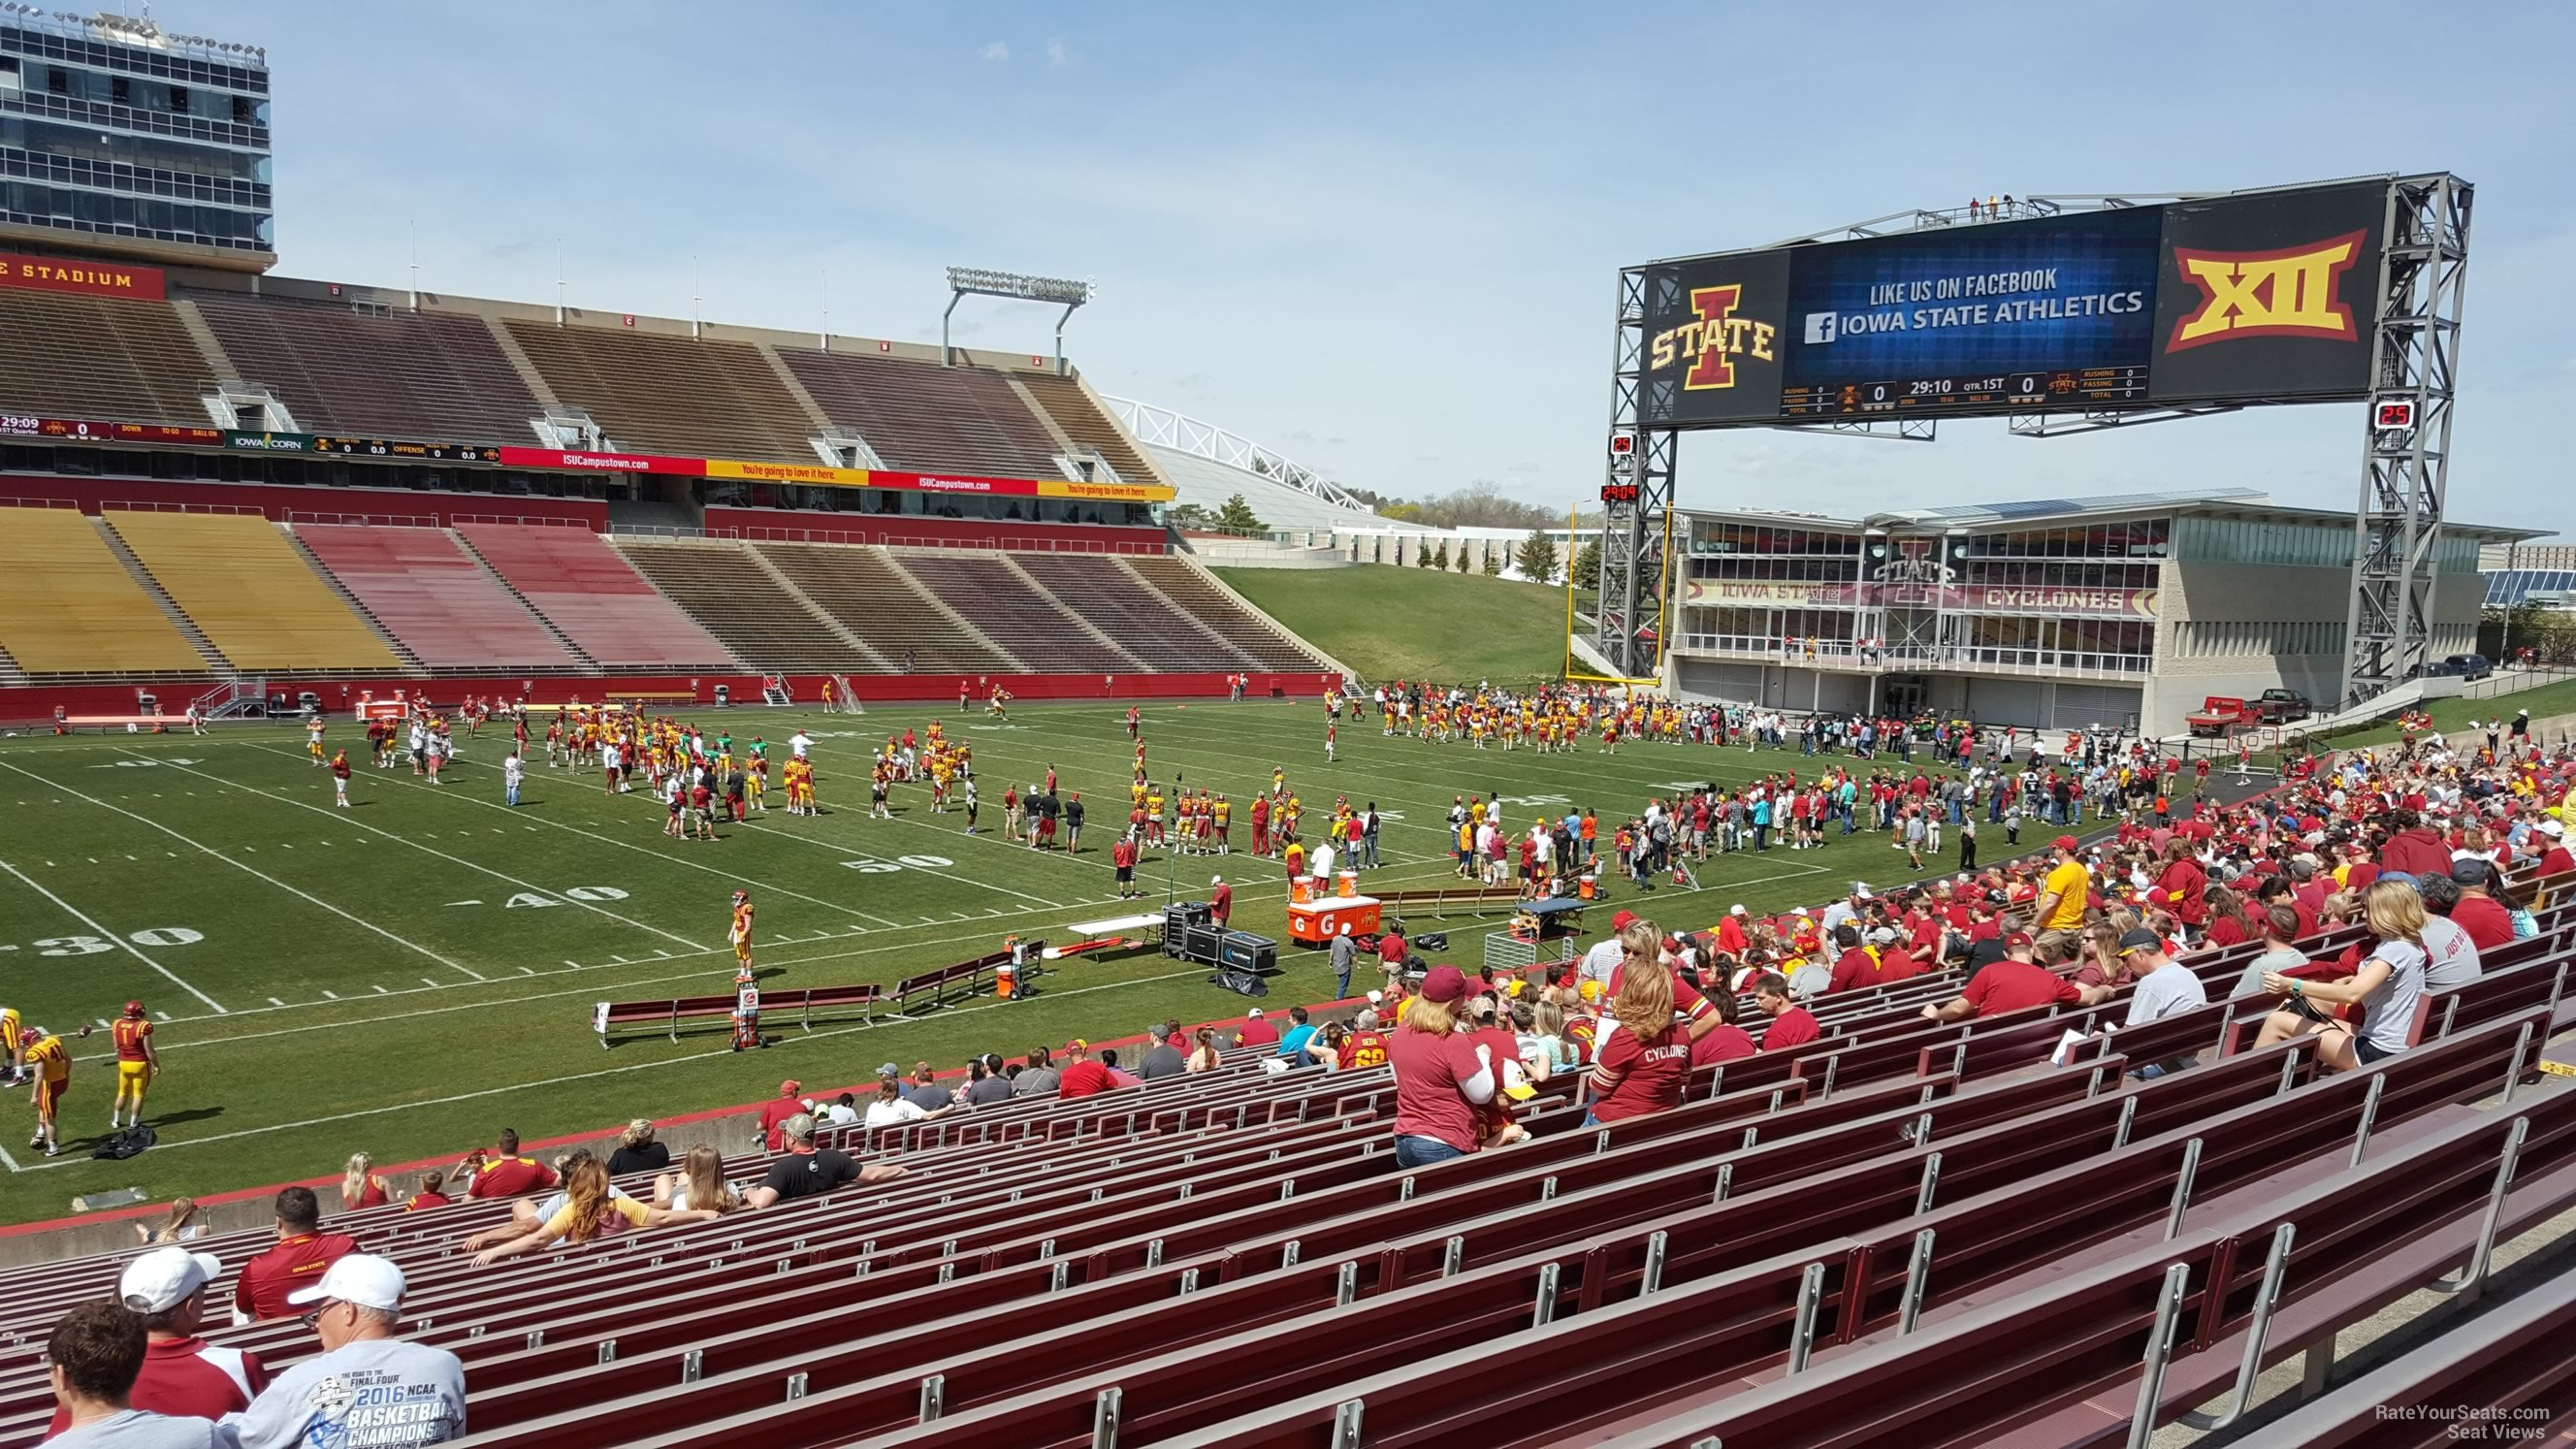 Seat View for Jack Trice Stadium Section 31, Row 30